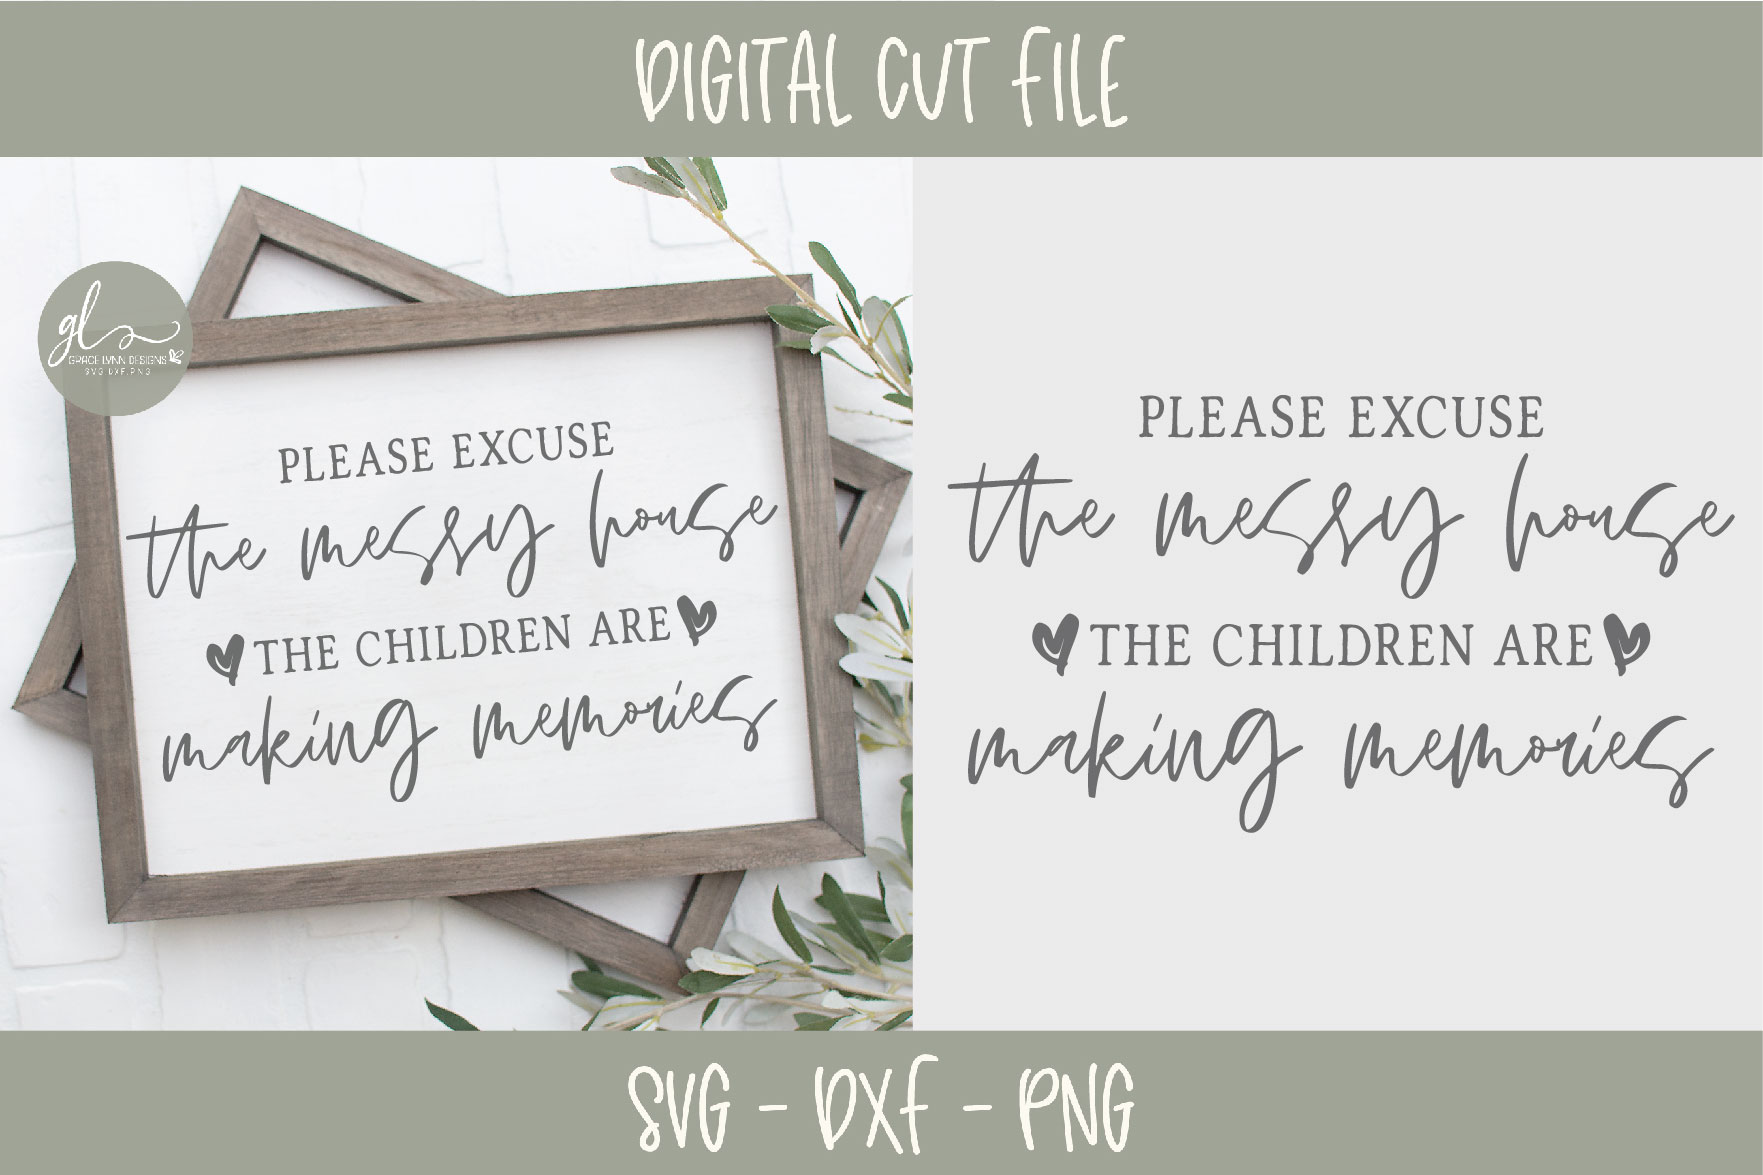 Please Excuse The Messy House - SVG example image 1